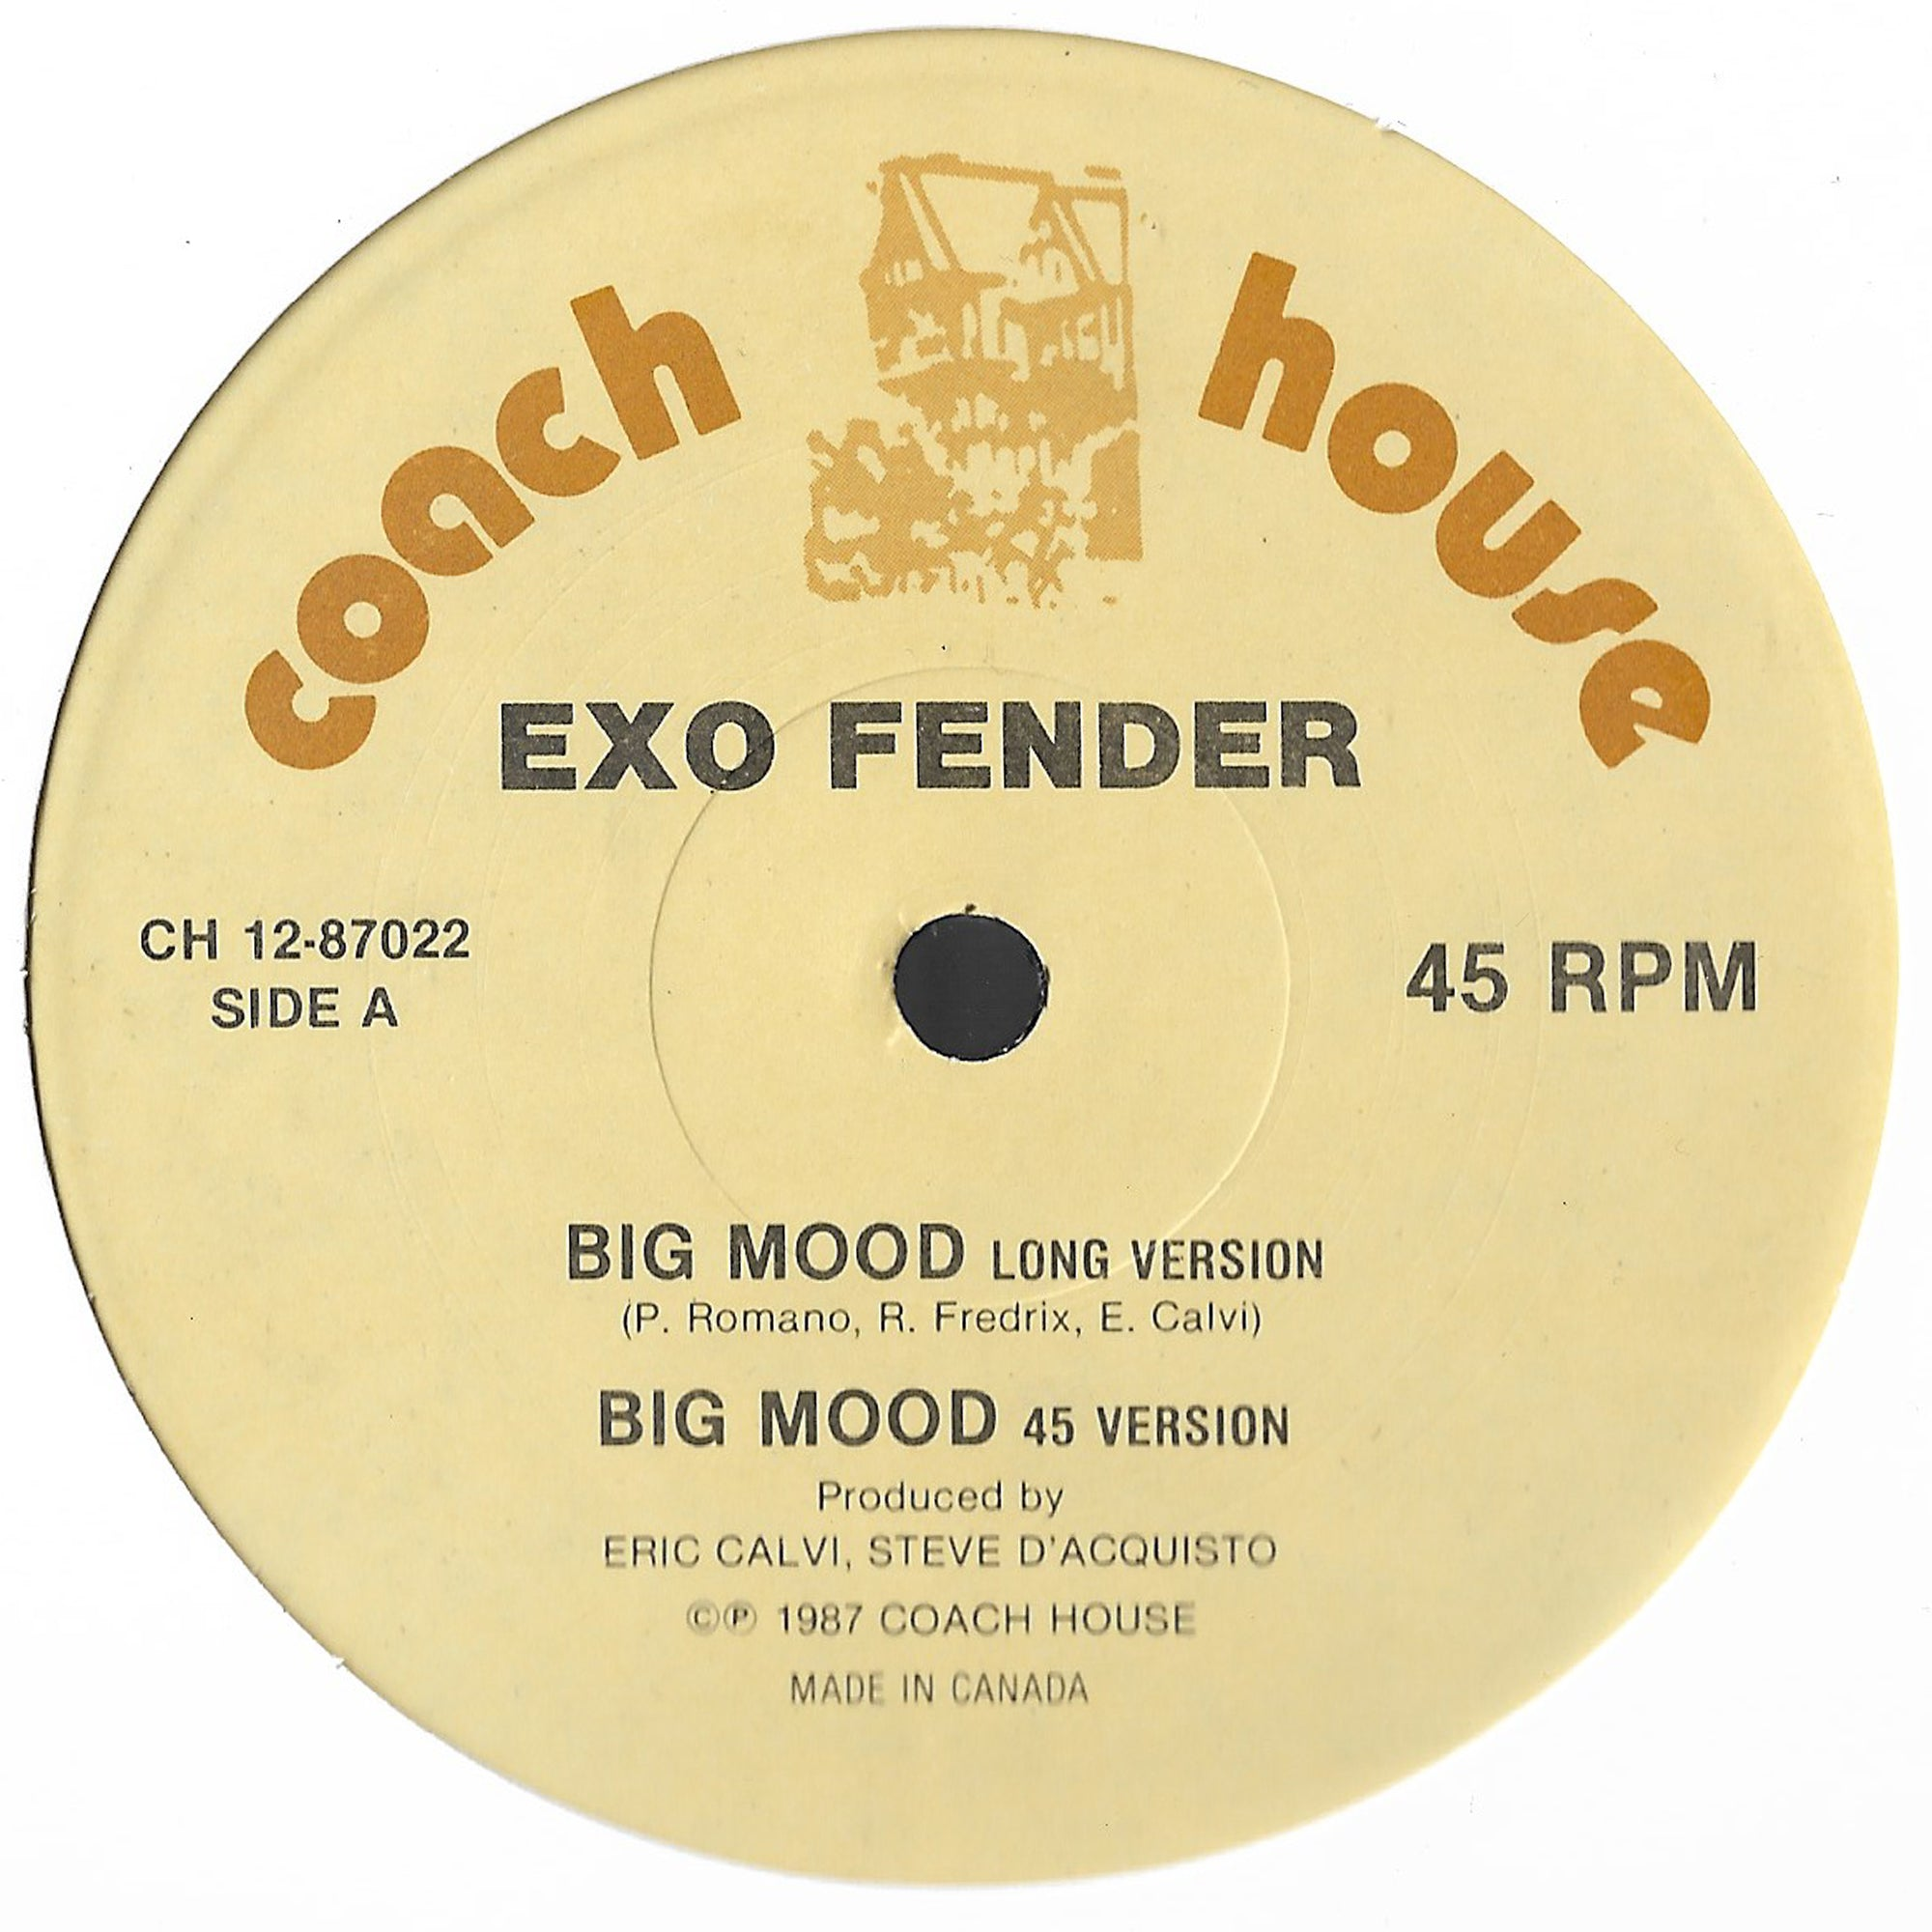 Exo Fender - Big Mood